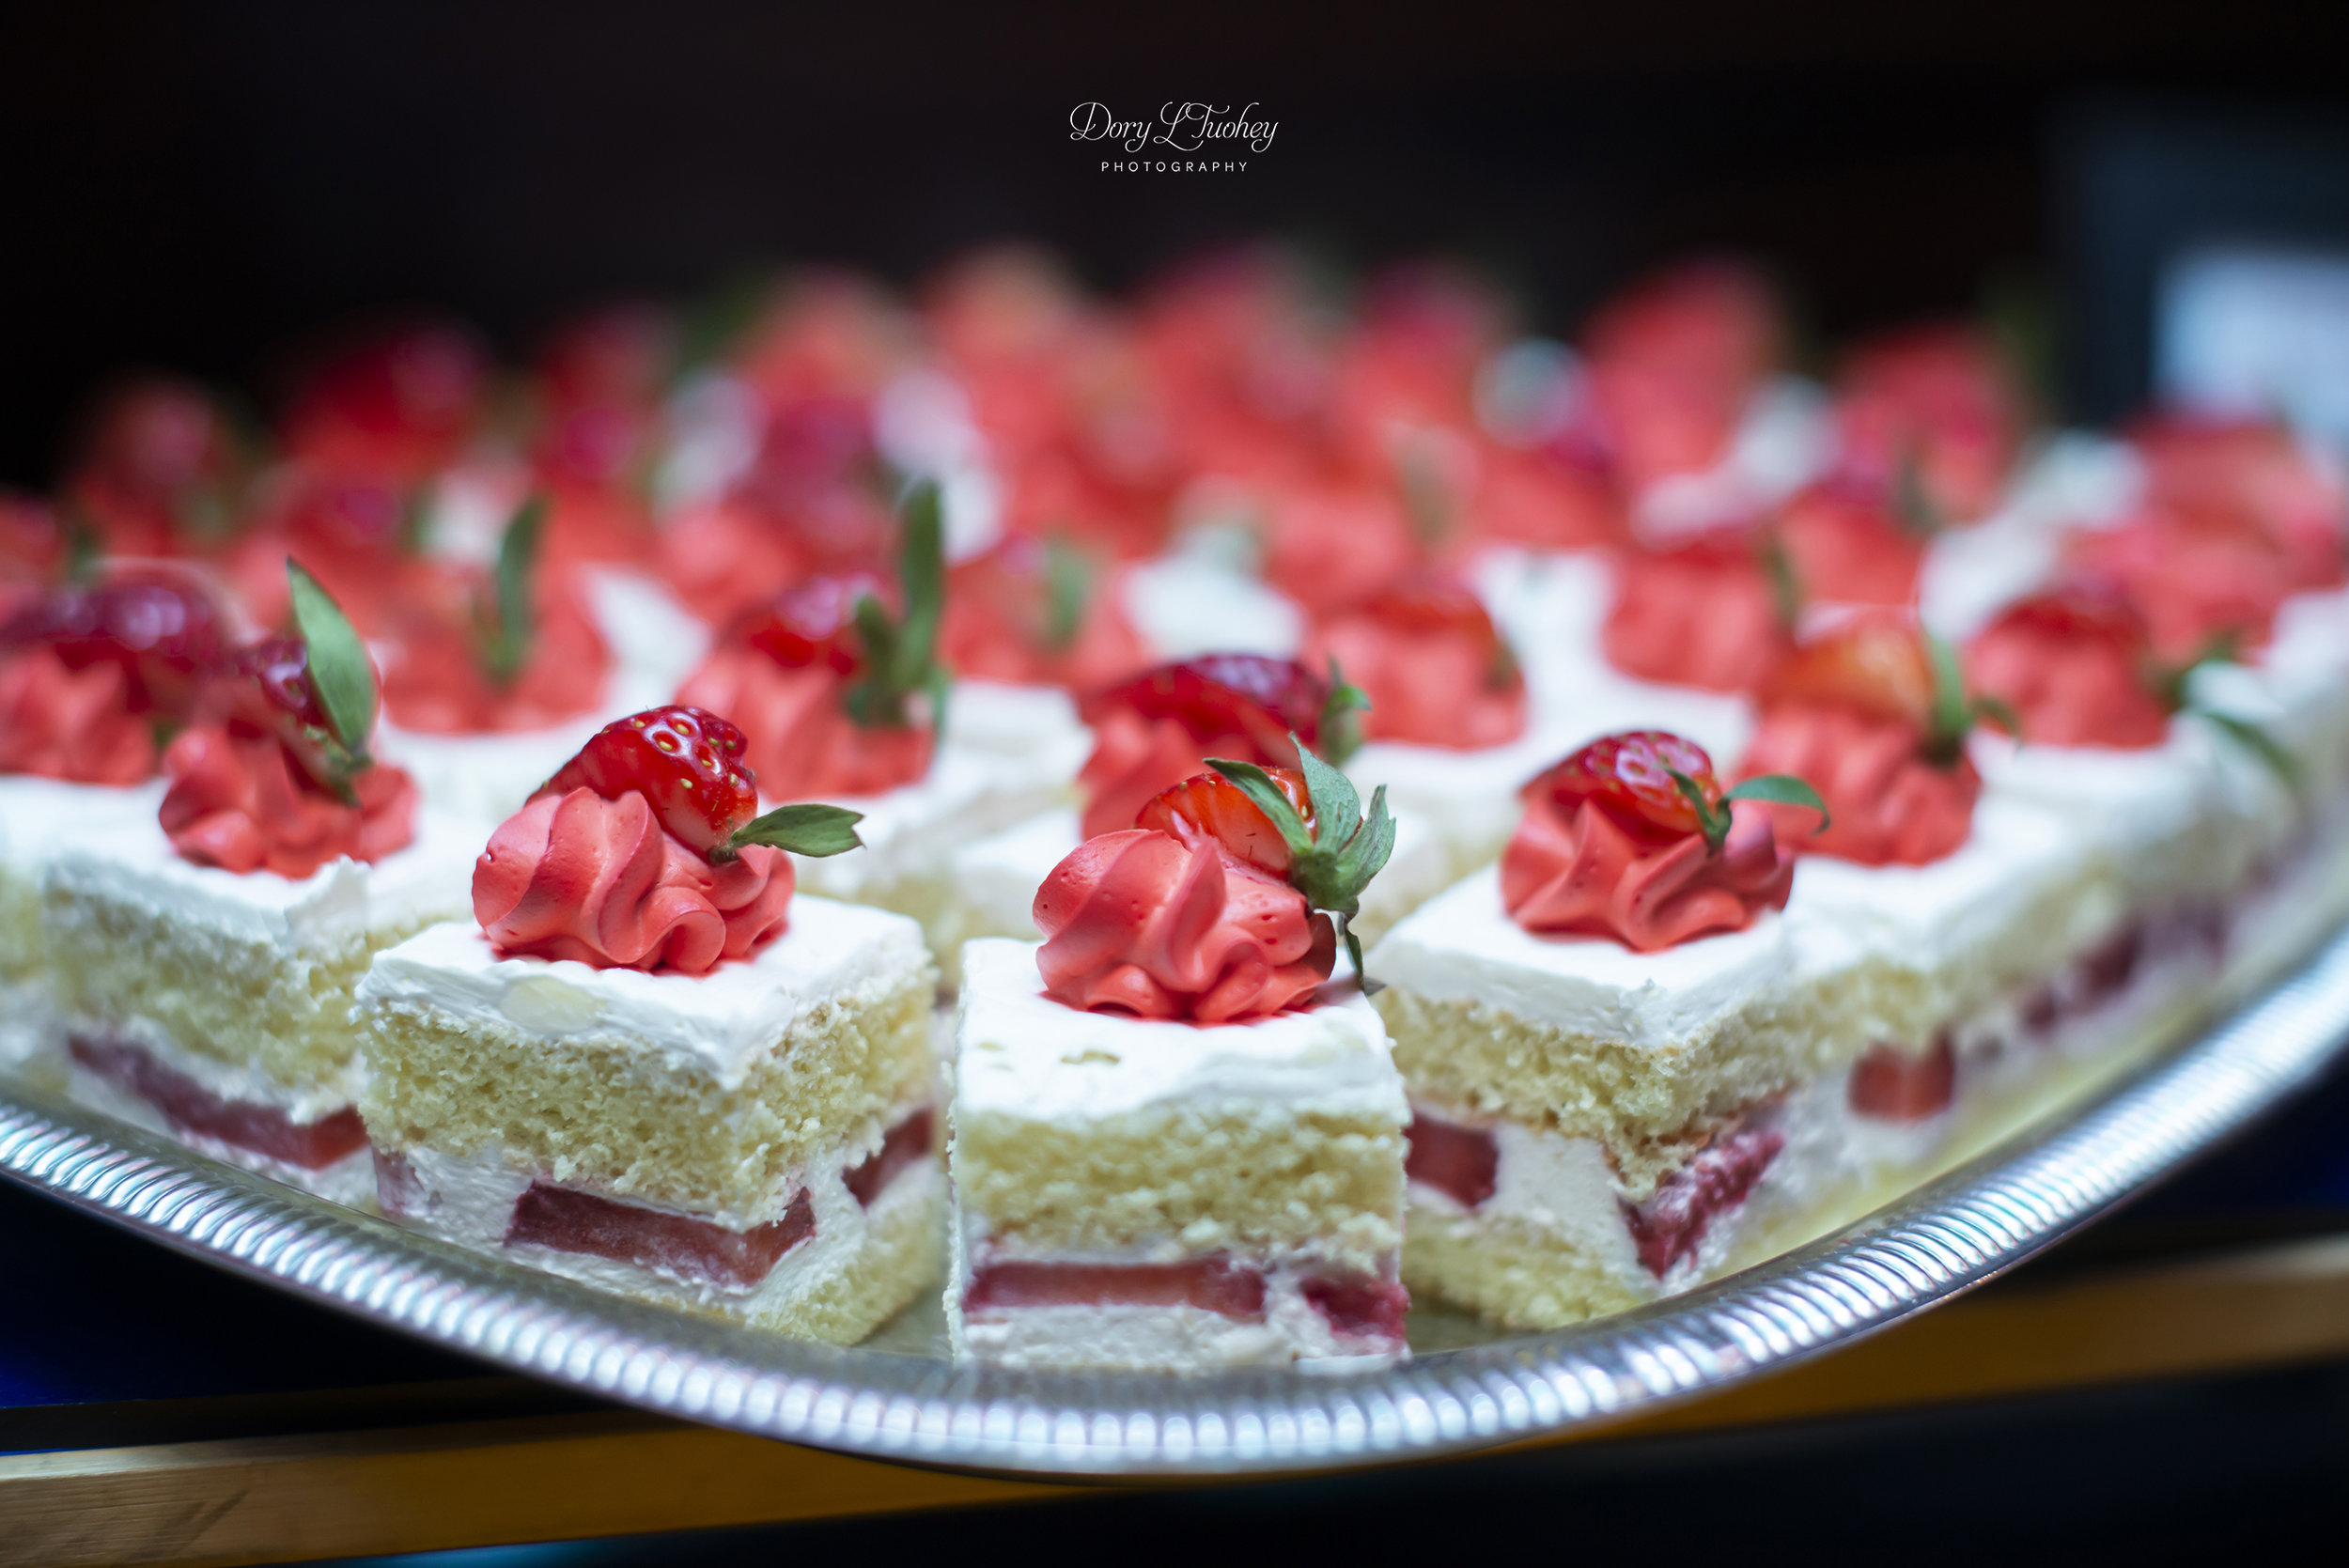 Carnivale_chicago_wedding_dory_circus_carnival_photographer_sweets_strawberry_09.jpg